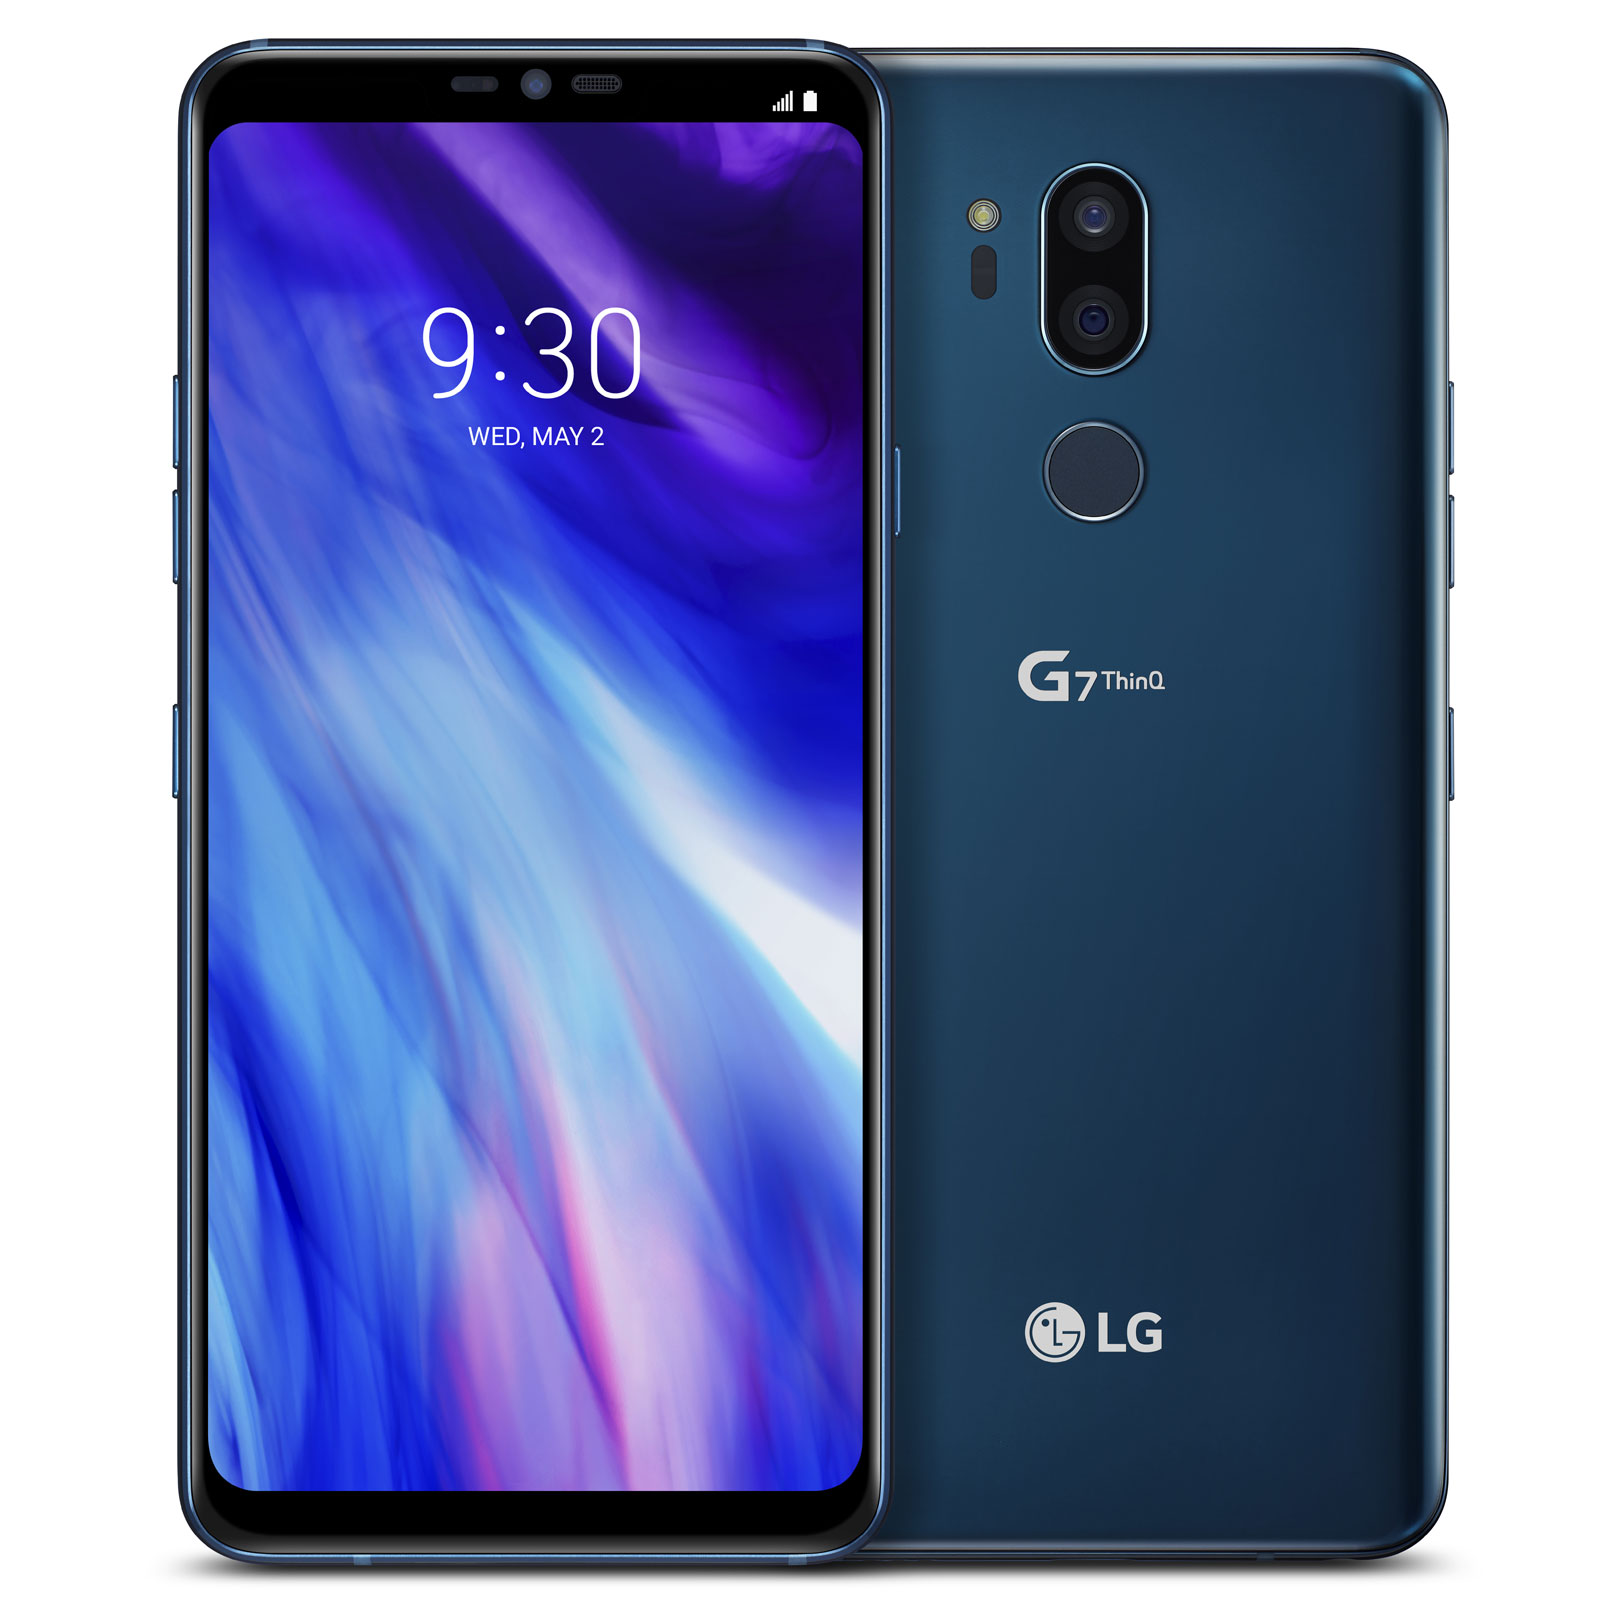 "Mobile & smartphone LG G7 ThinQ 64 Go Bleu Smartphone 4G-LTE Advanced IP68 - Snapdragon 845 8-Core 2.8 GHz - RAM 4 Go - Ecran tactile 6.1"" 1440 x 3120 - 64 Go - NFC/Bluetooth 5.0 - 3000 mAh - Android 8.0"